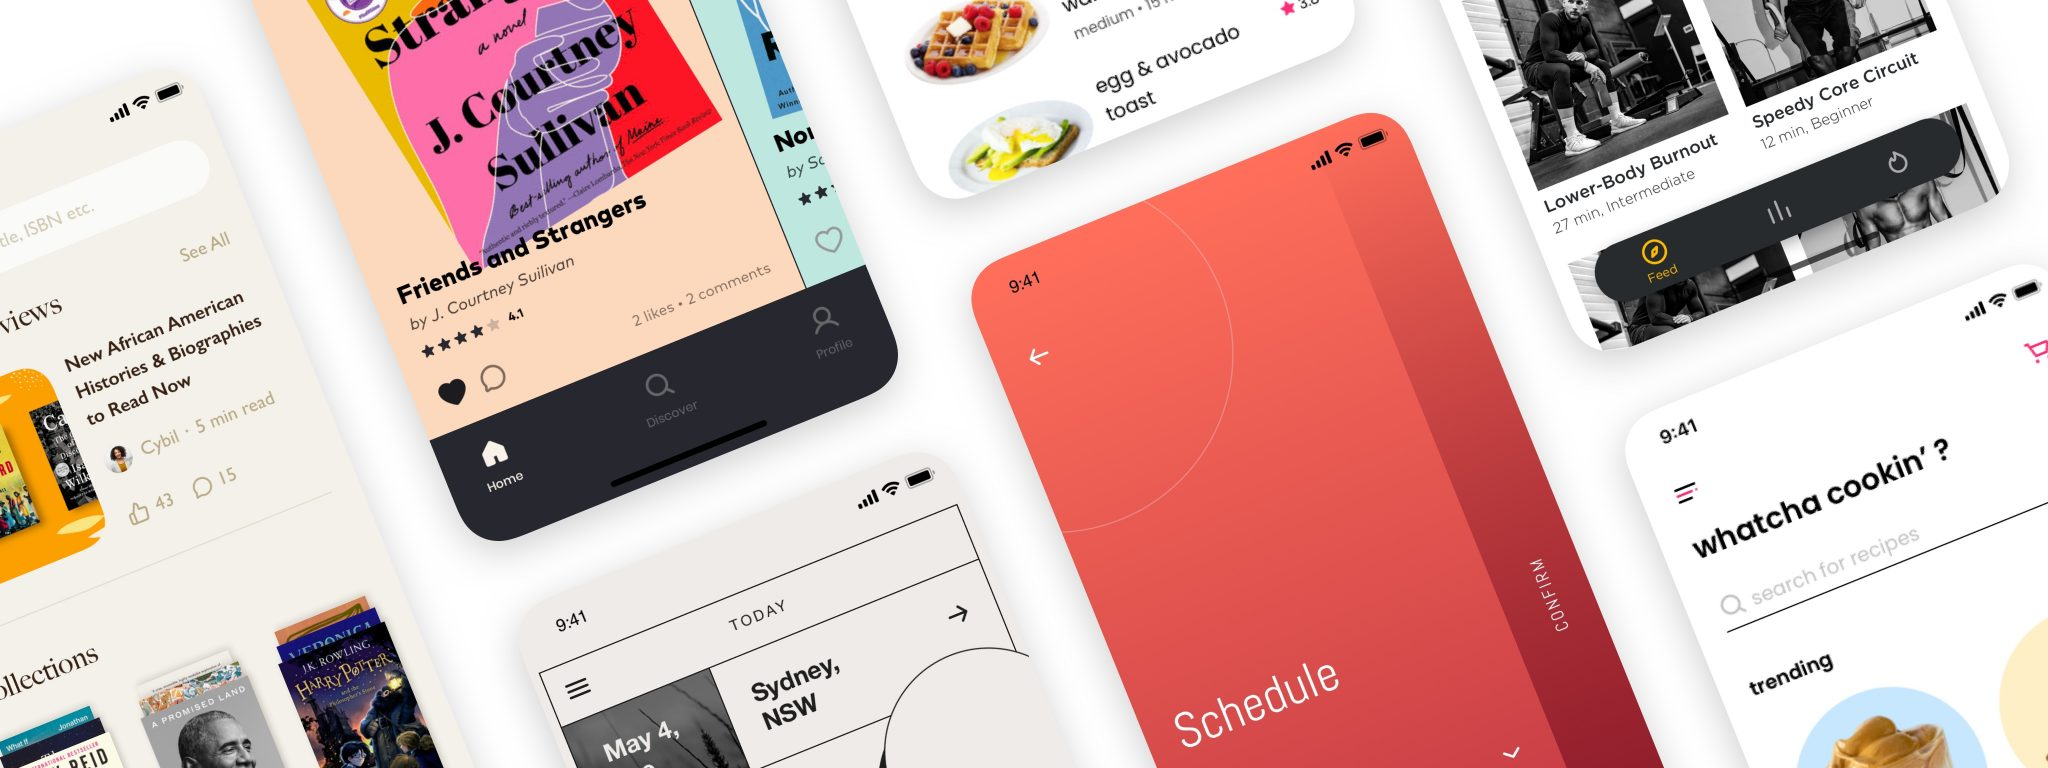 screens and examples of UI design challenges